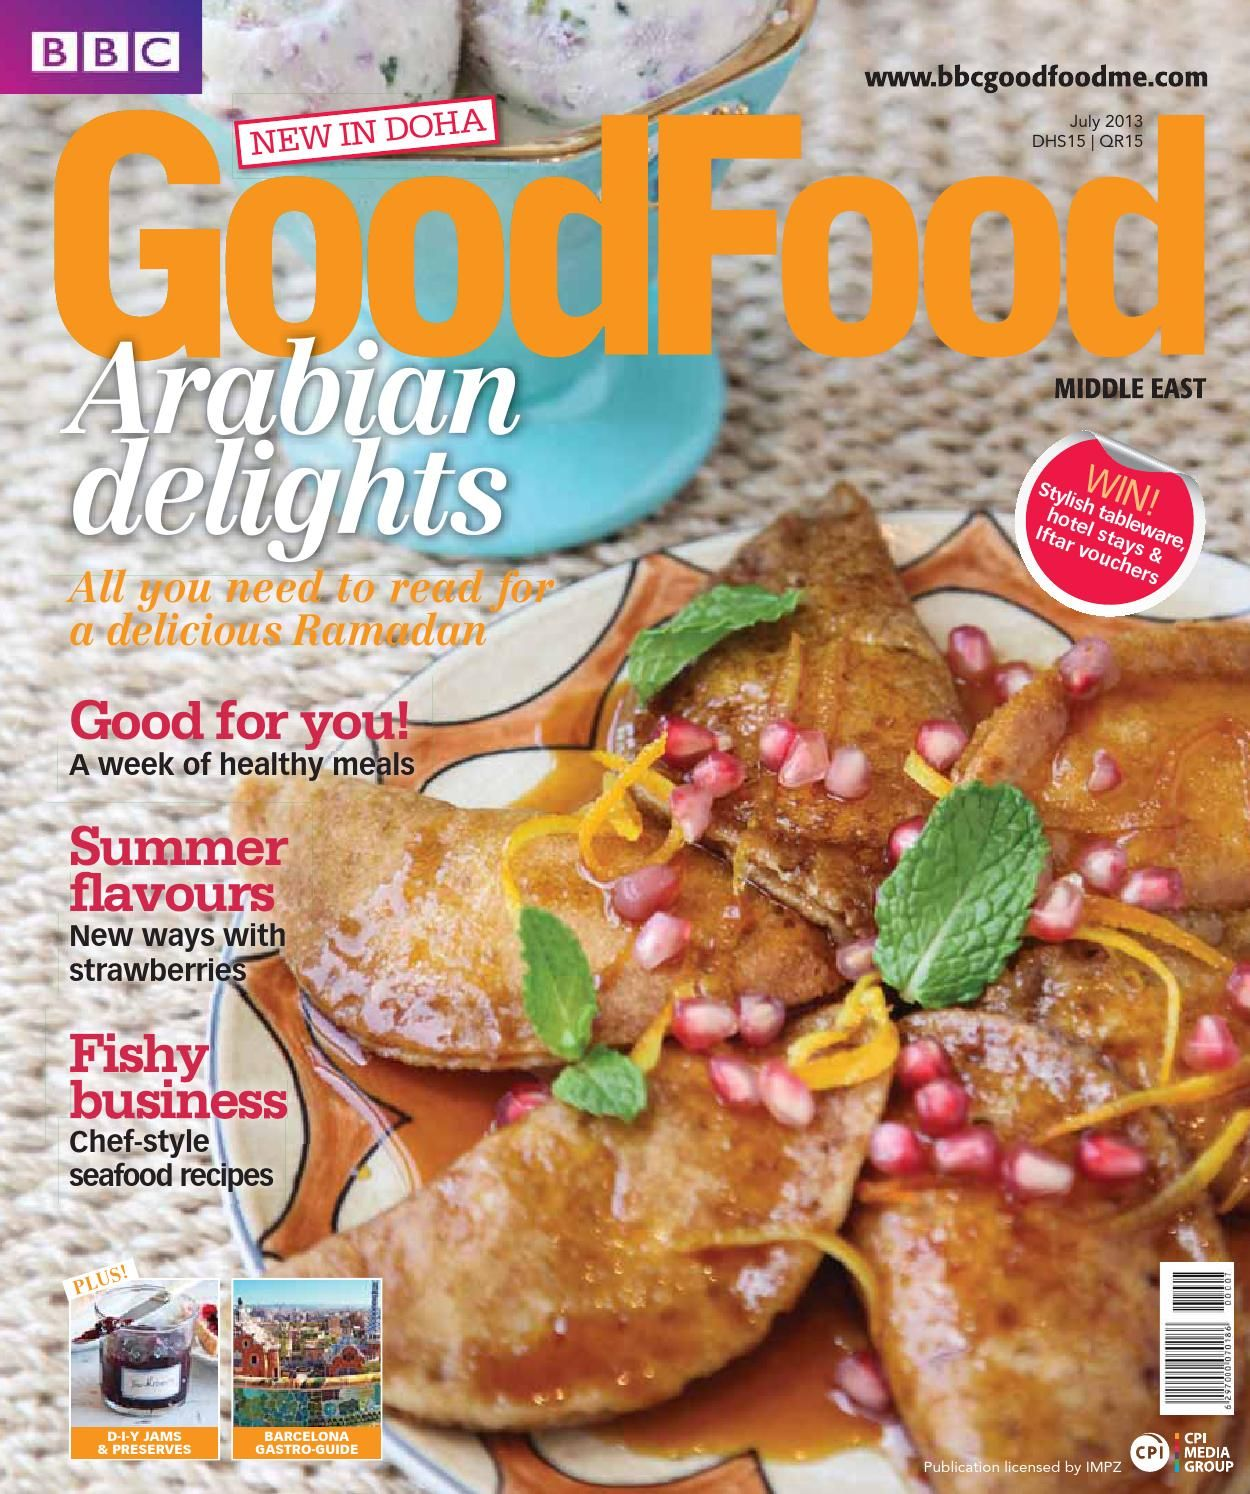 Bbc good food me 2013 july pinterest bbc bbc good food me 2013 july forumfinder Image collections